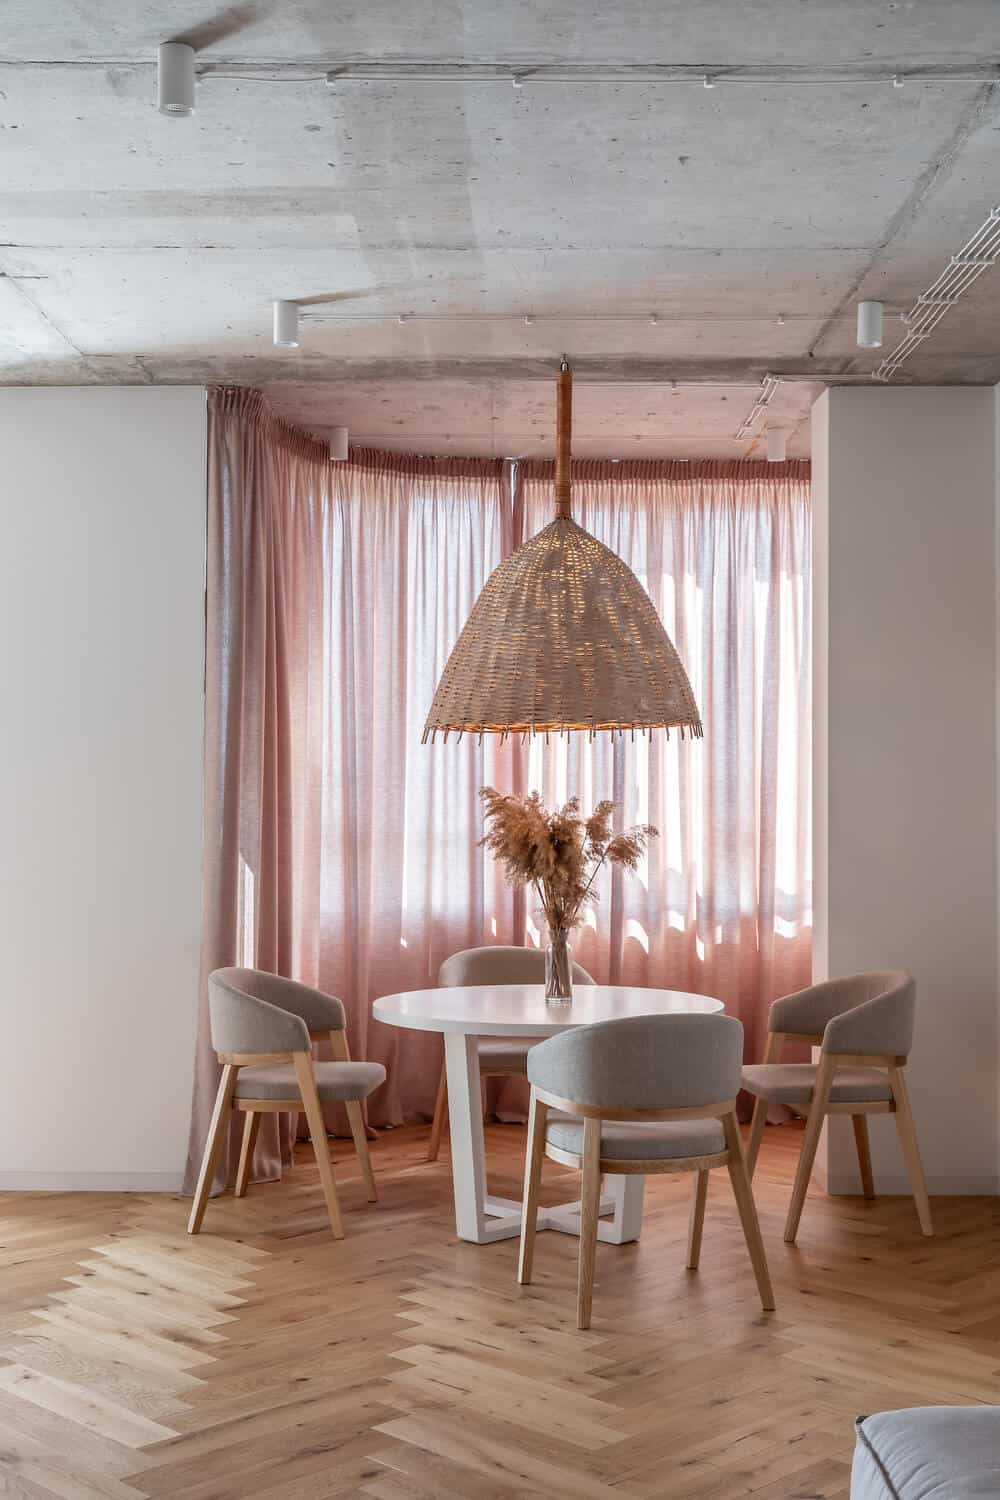 This is s close look at the minimalist dining area with a white round table surrounded by cushioned gray chairs and topped with a rustic pendant light cover.